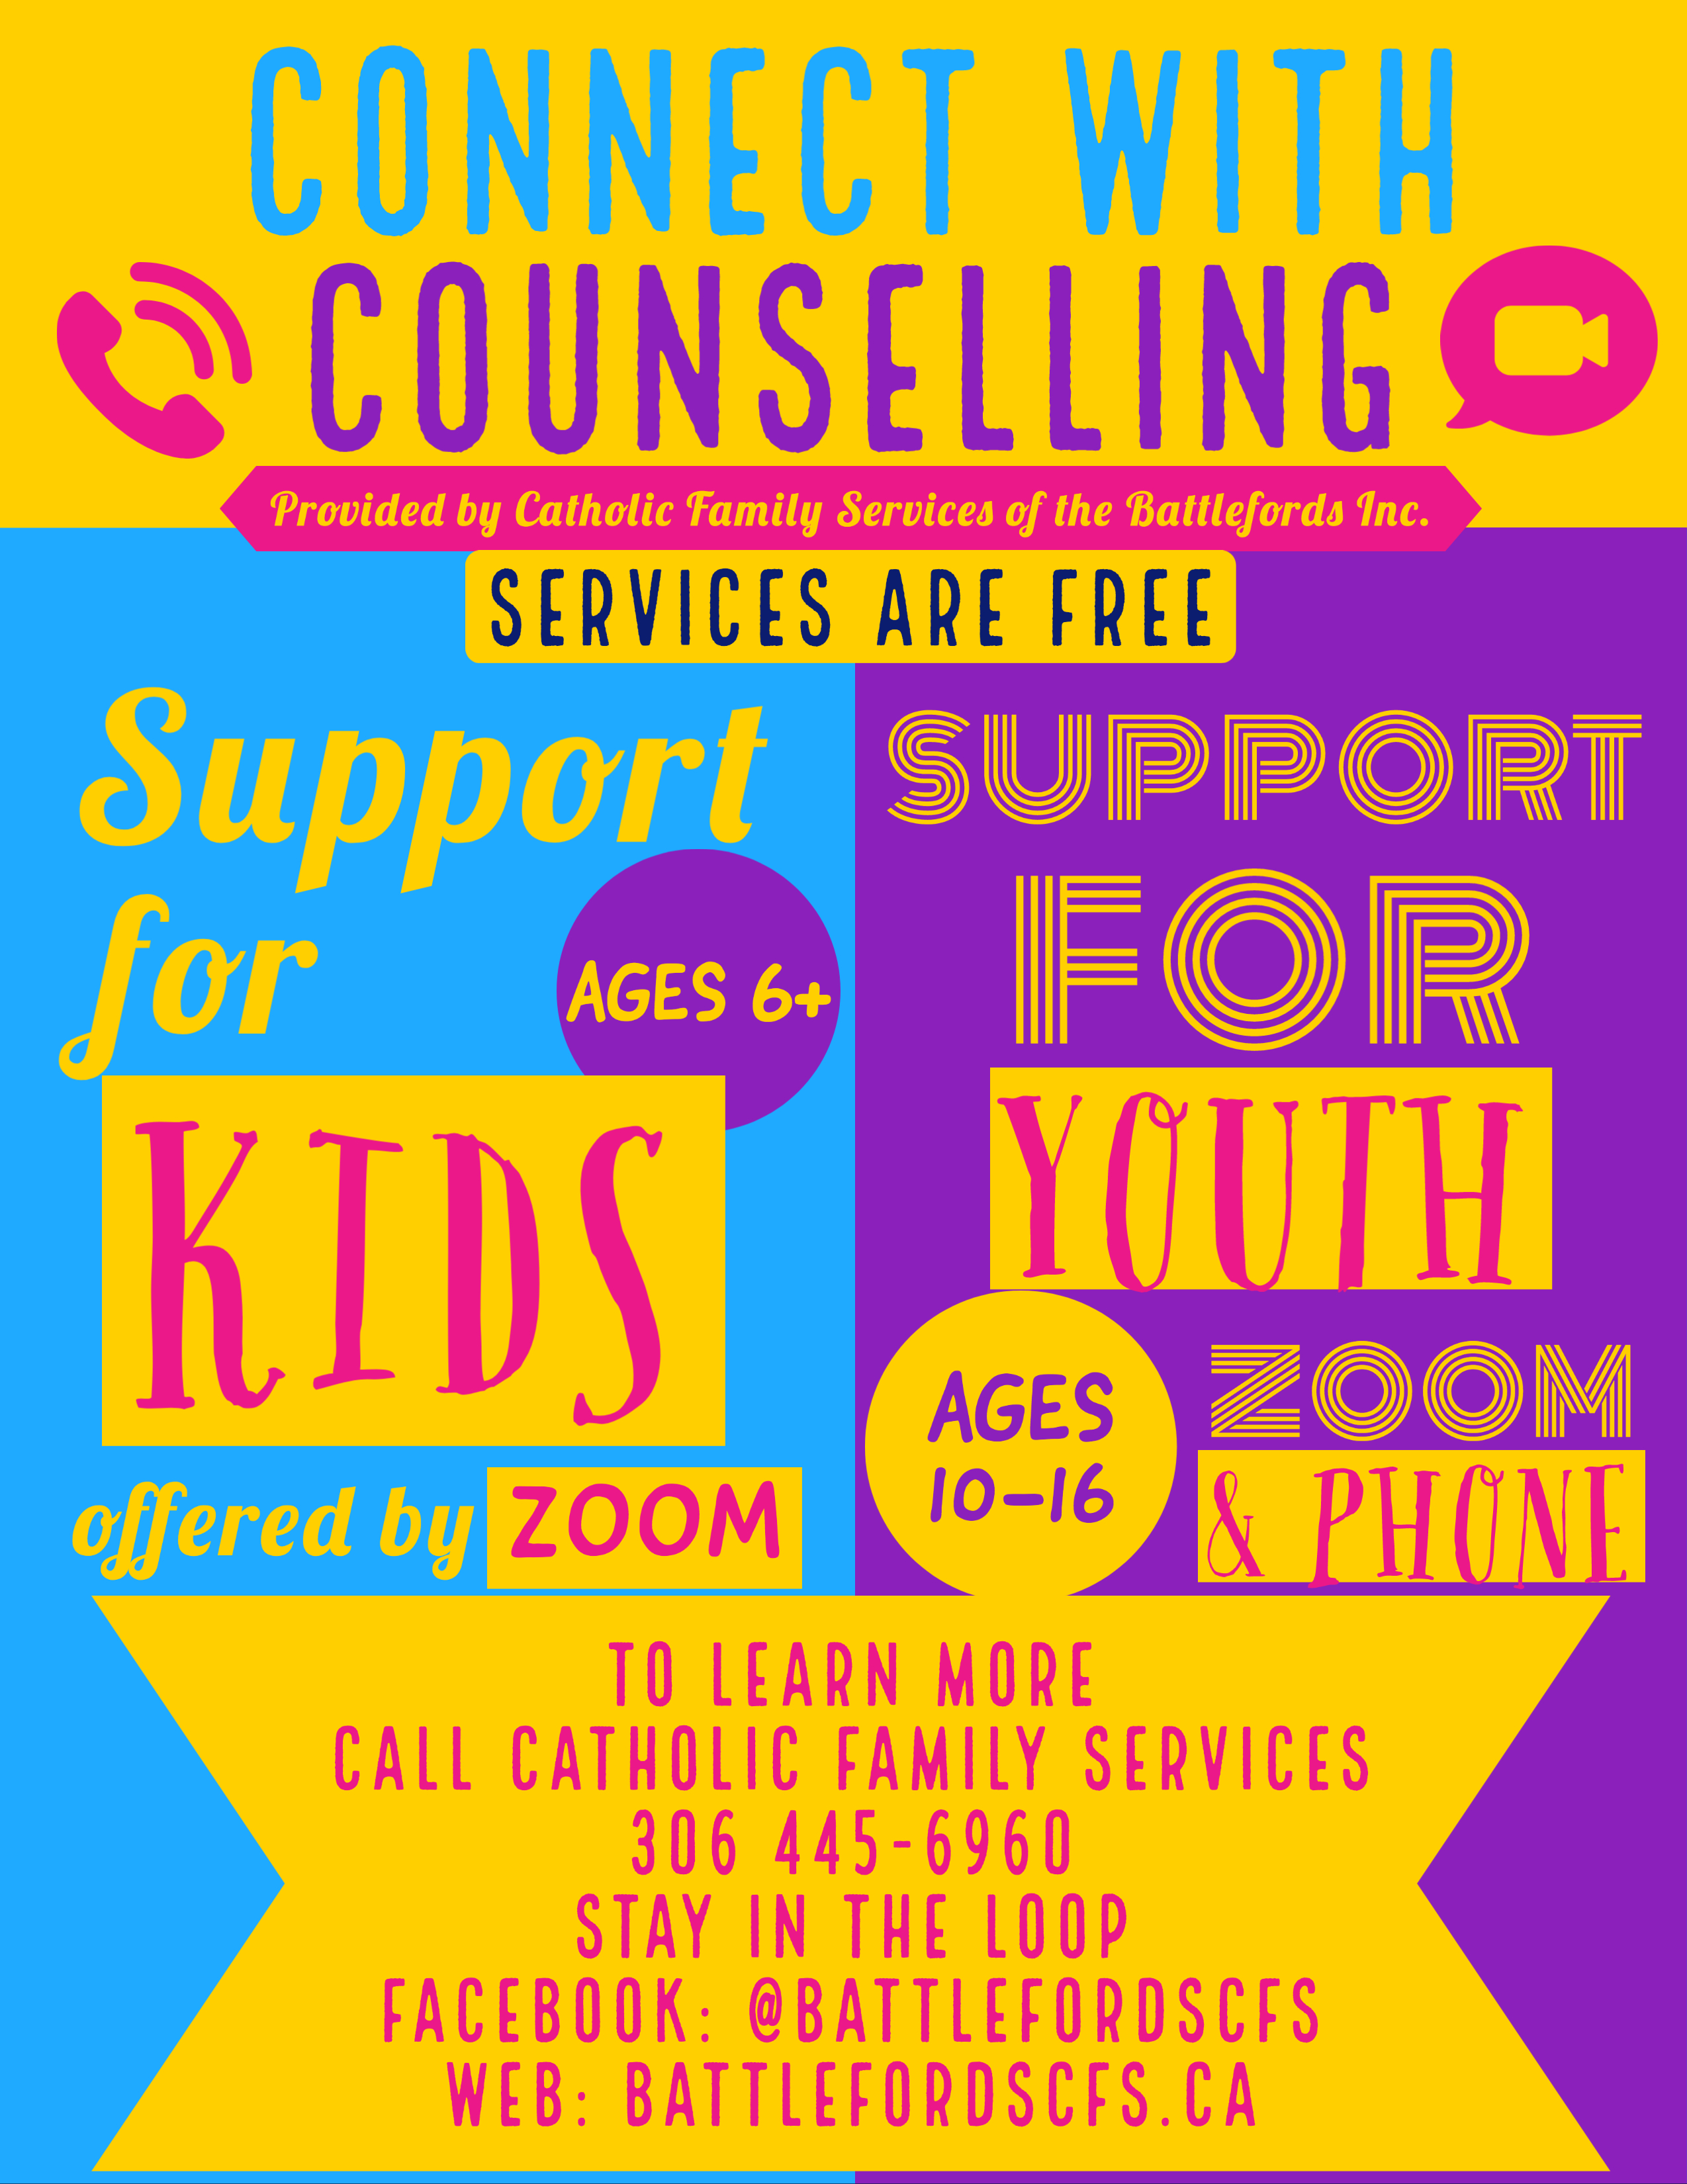 Child & Youth Counselling